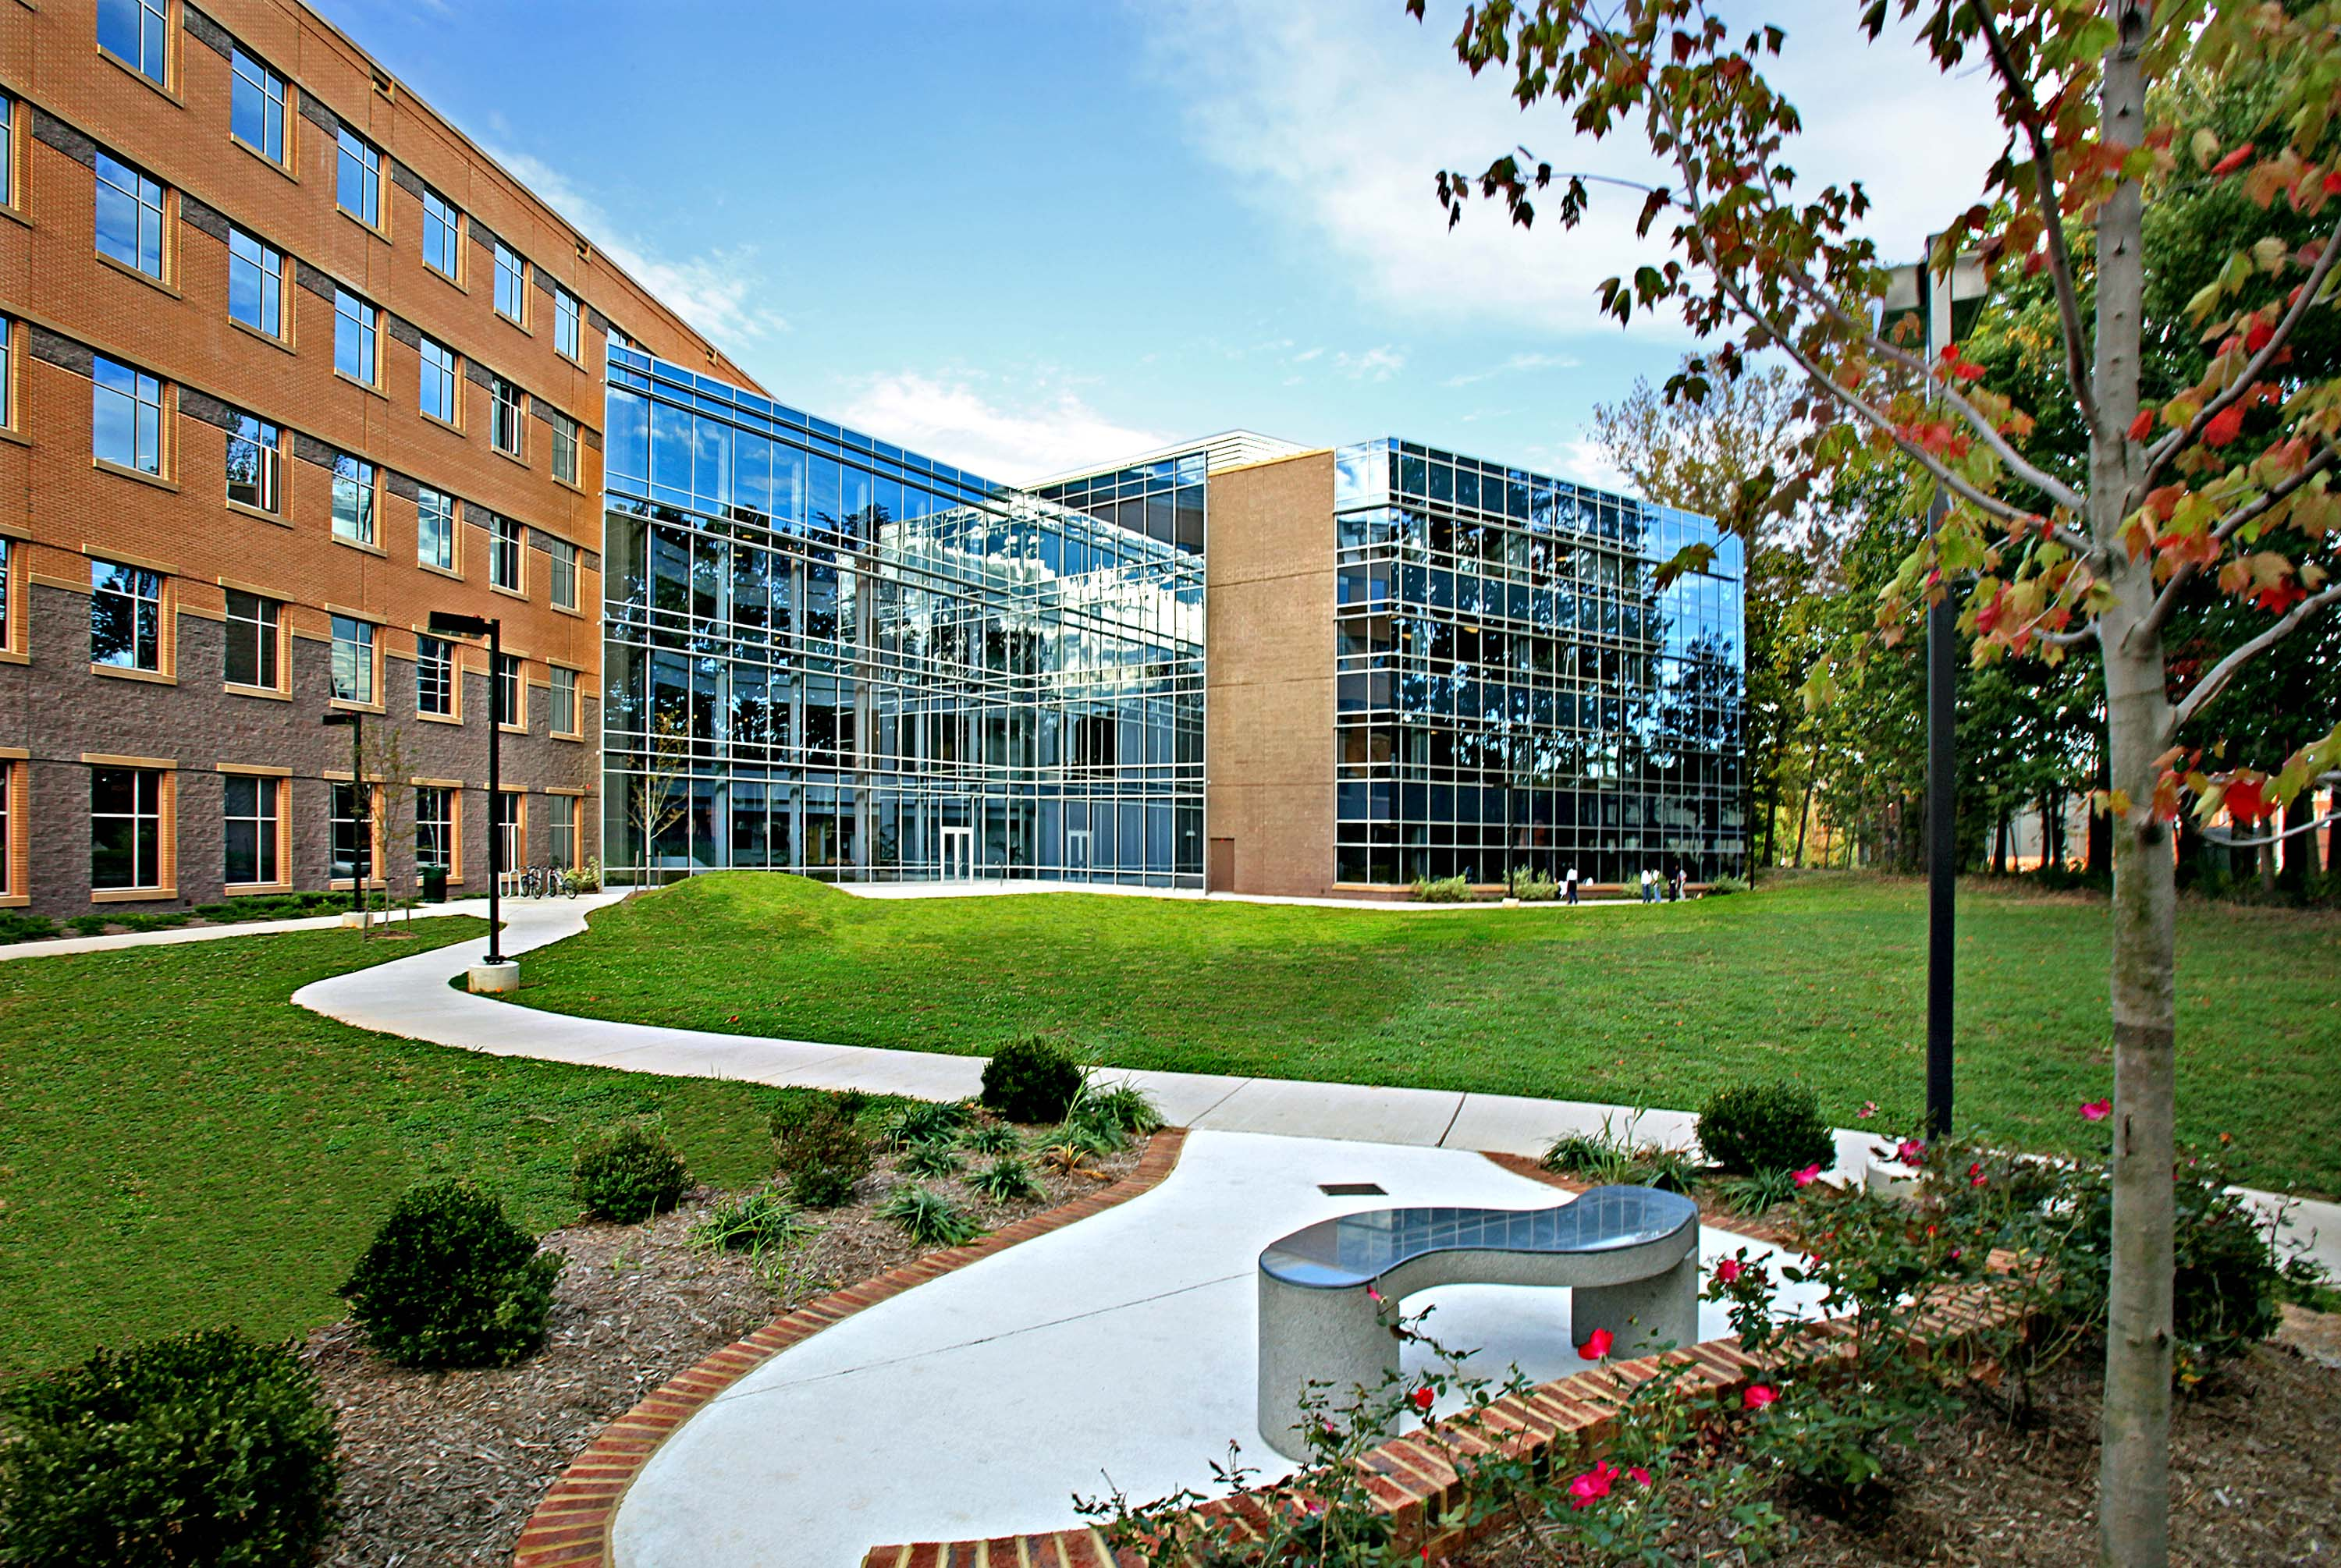 This past month, faculty and staff of the Volgenau School of Information Technology and Engineering moved into their new home at George Mason University - now the largest academic building on the Fairfax campus.